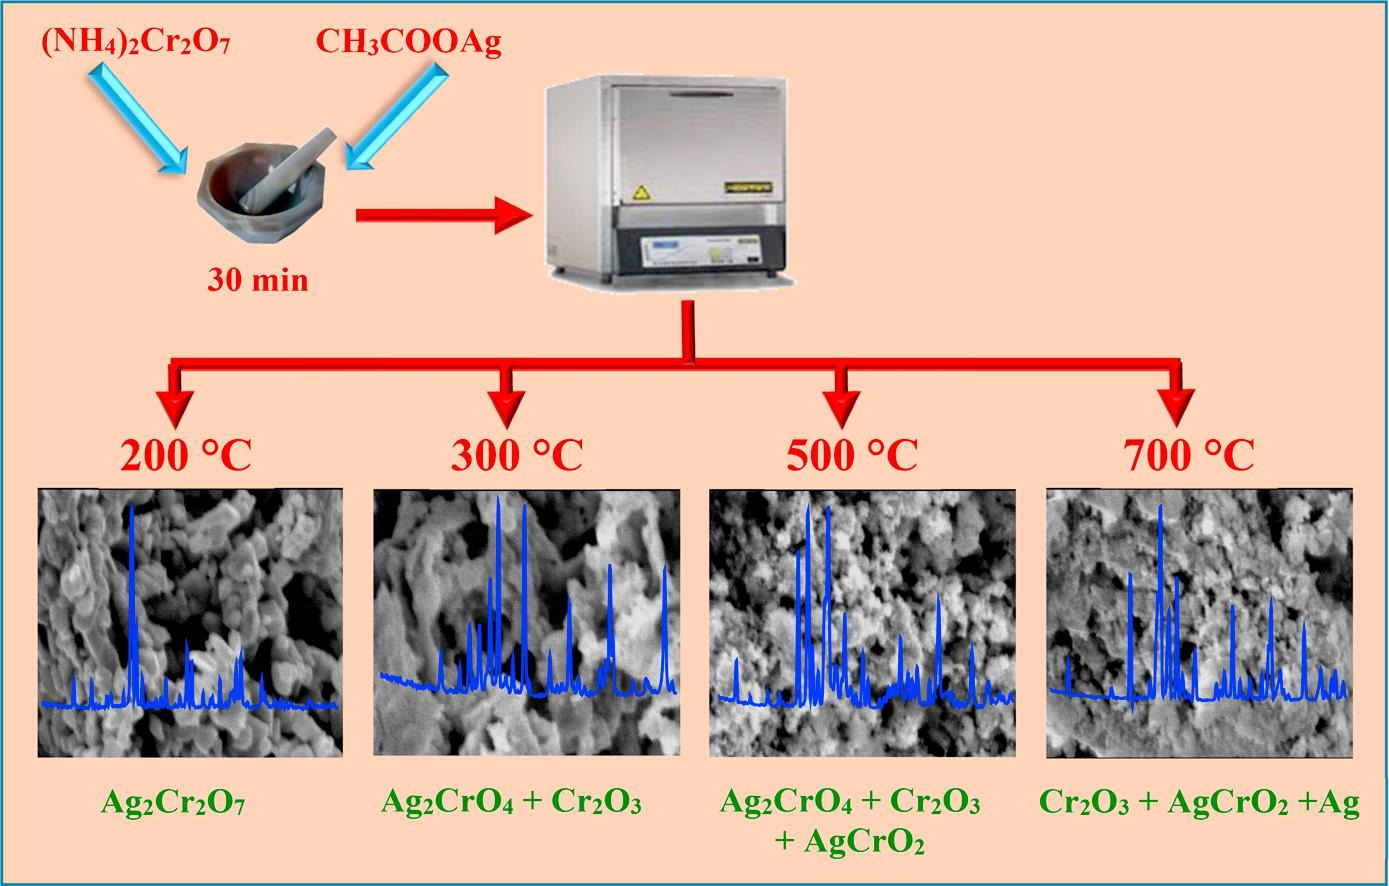 Fabrication, characterization and catalytic activity measurements of nanocrystalline Ag-Cr-O catalysts